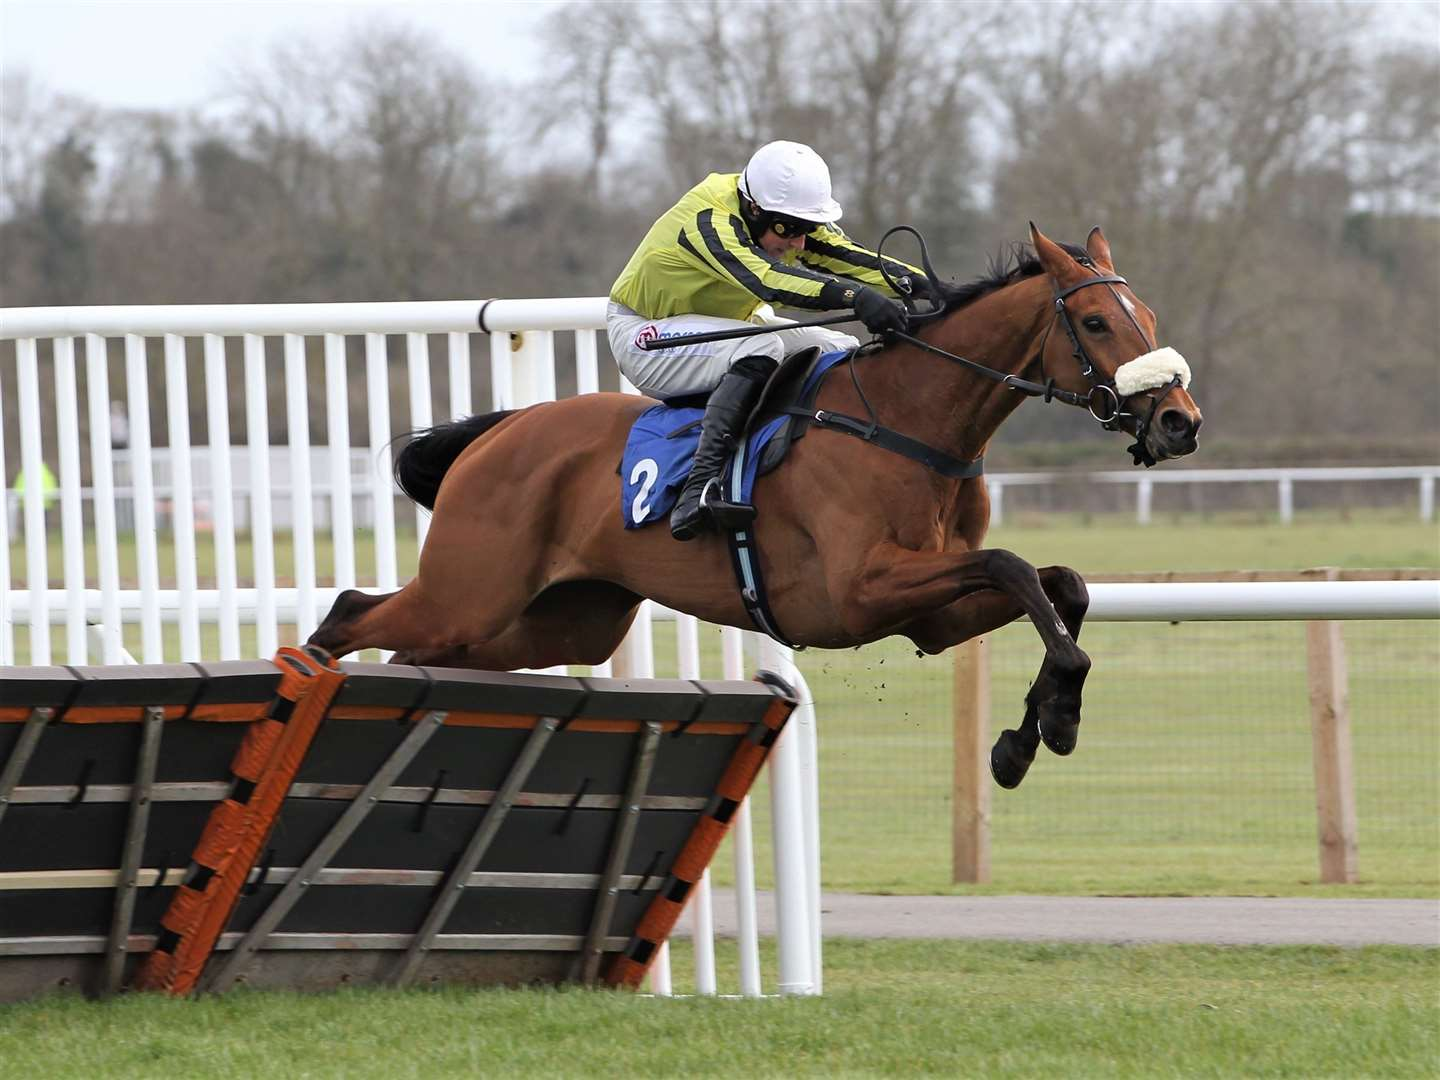 Stepney Causeway and Harry Skelton win at Stratford. Photo: Steve Davies / www.sdphotos.co.uk